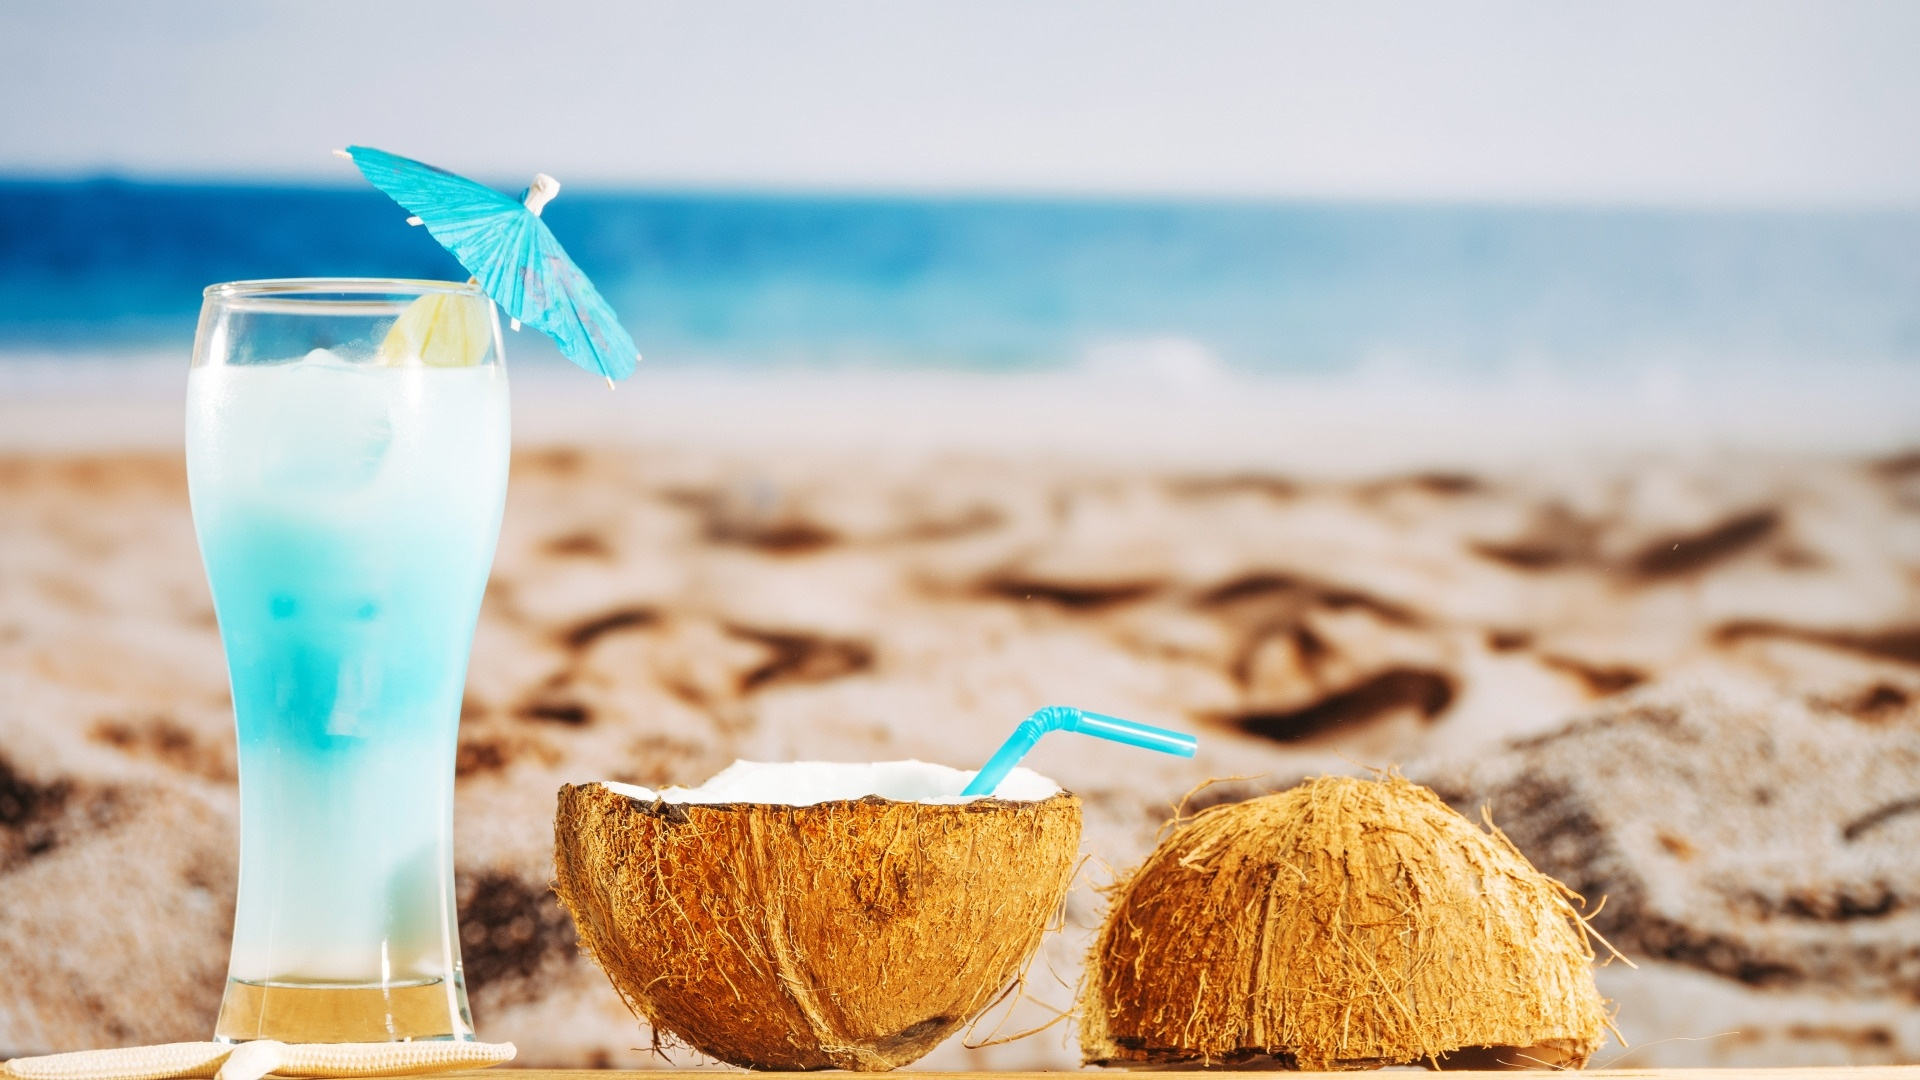 Coconuts By The Sea free image